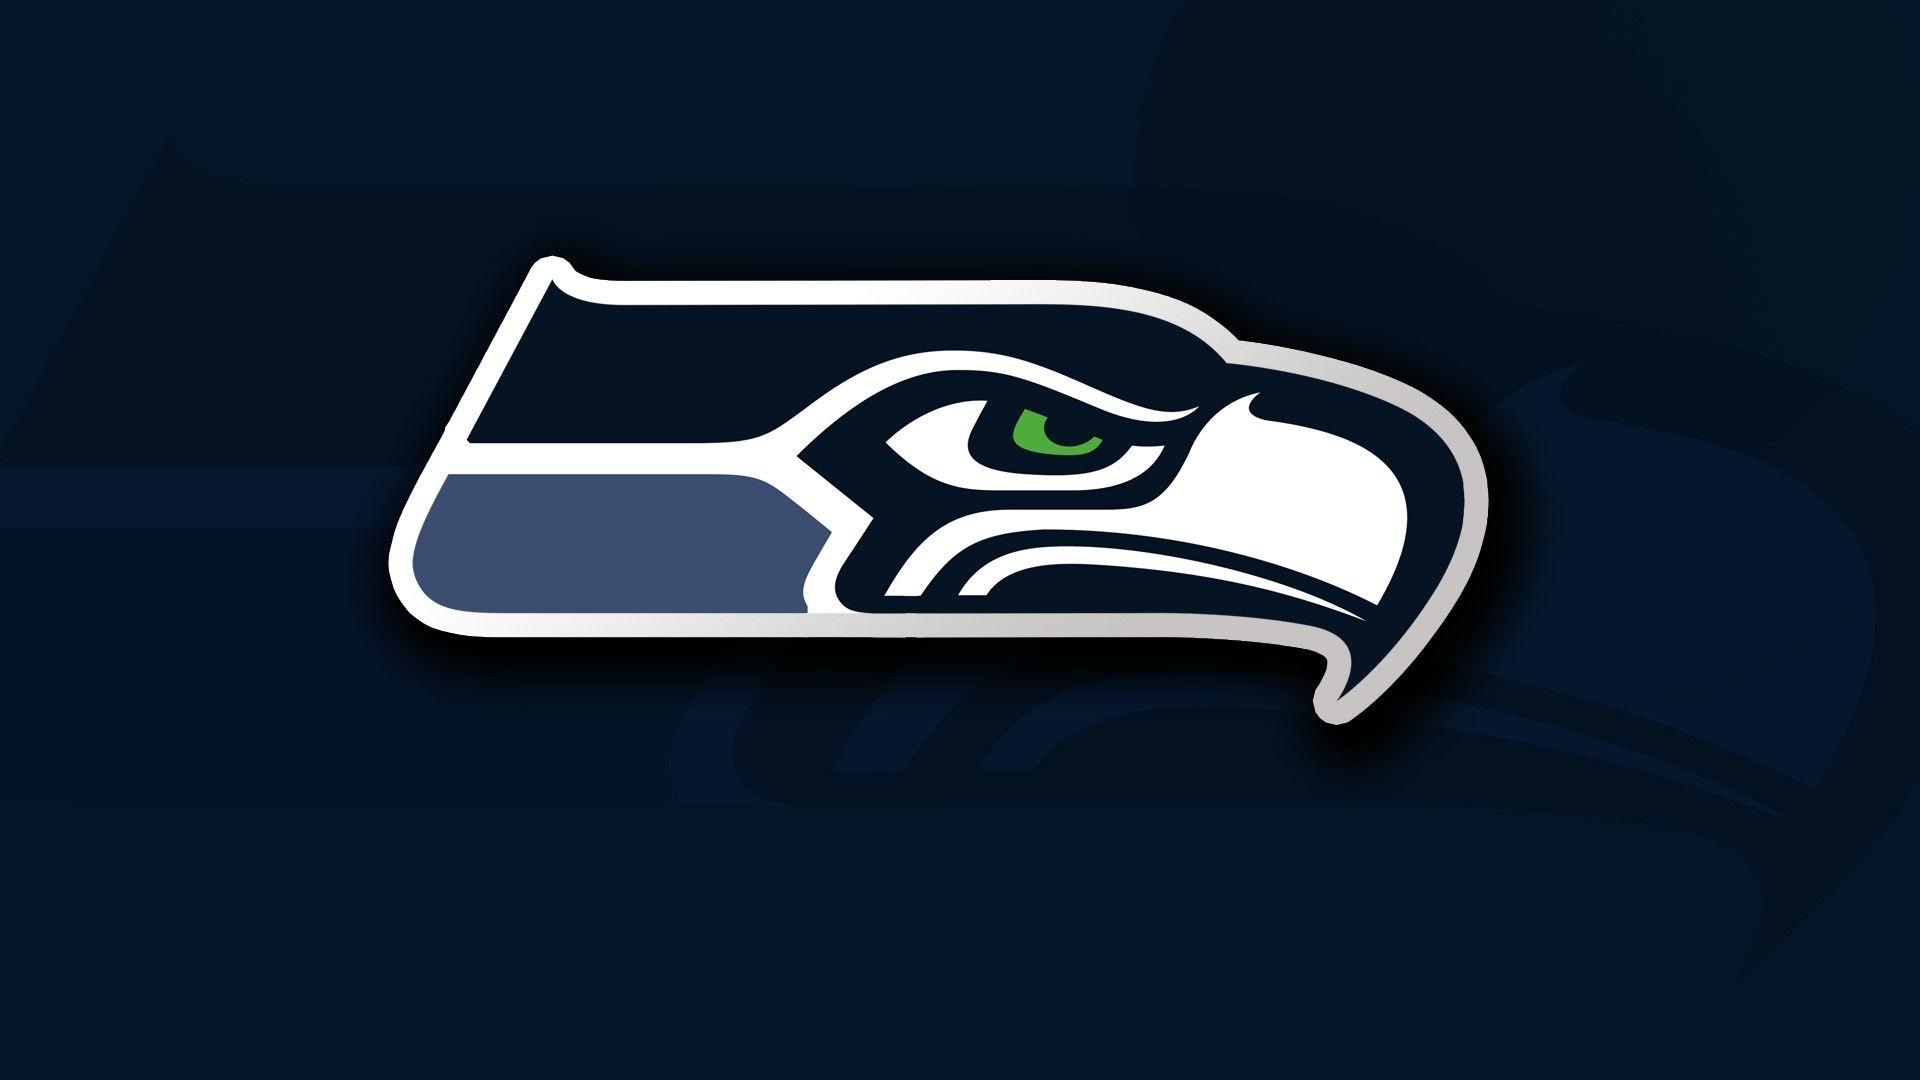 Seattle Seahawks Wallpaper 1920x1080: 2018 Seattle Seahawks Wallpaper (84+ Images